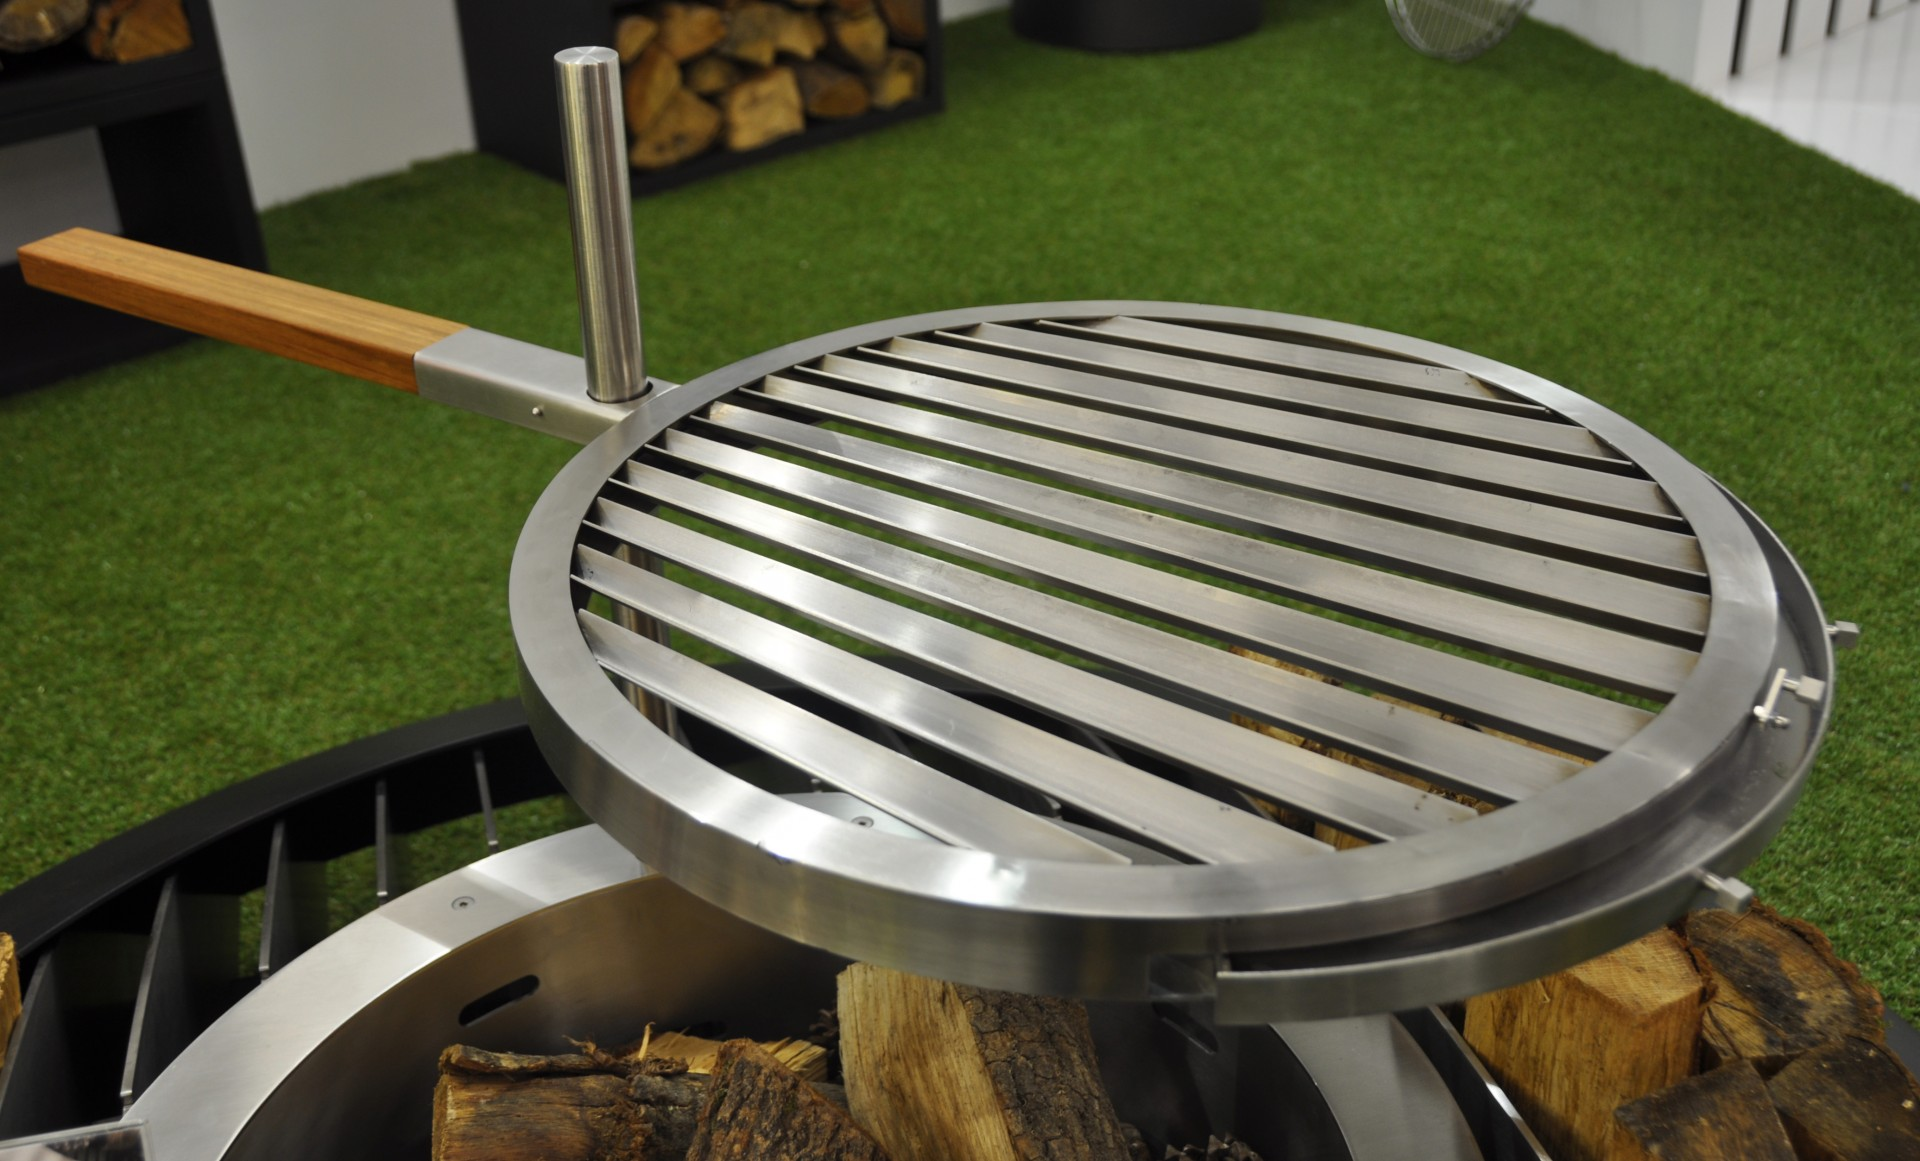 Grill Argentine